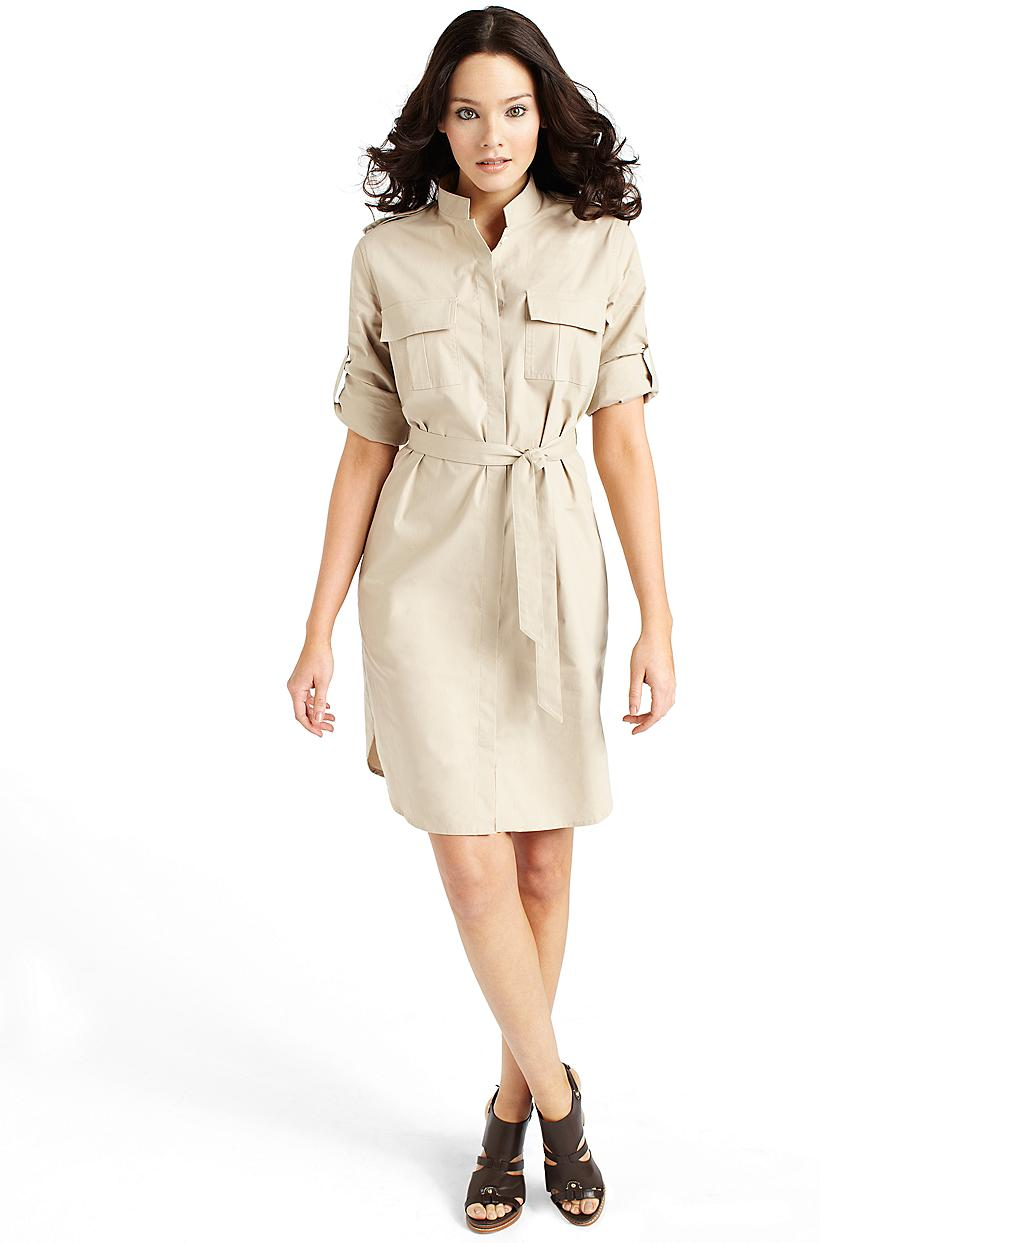 Petite womens clothing stores near me